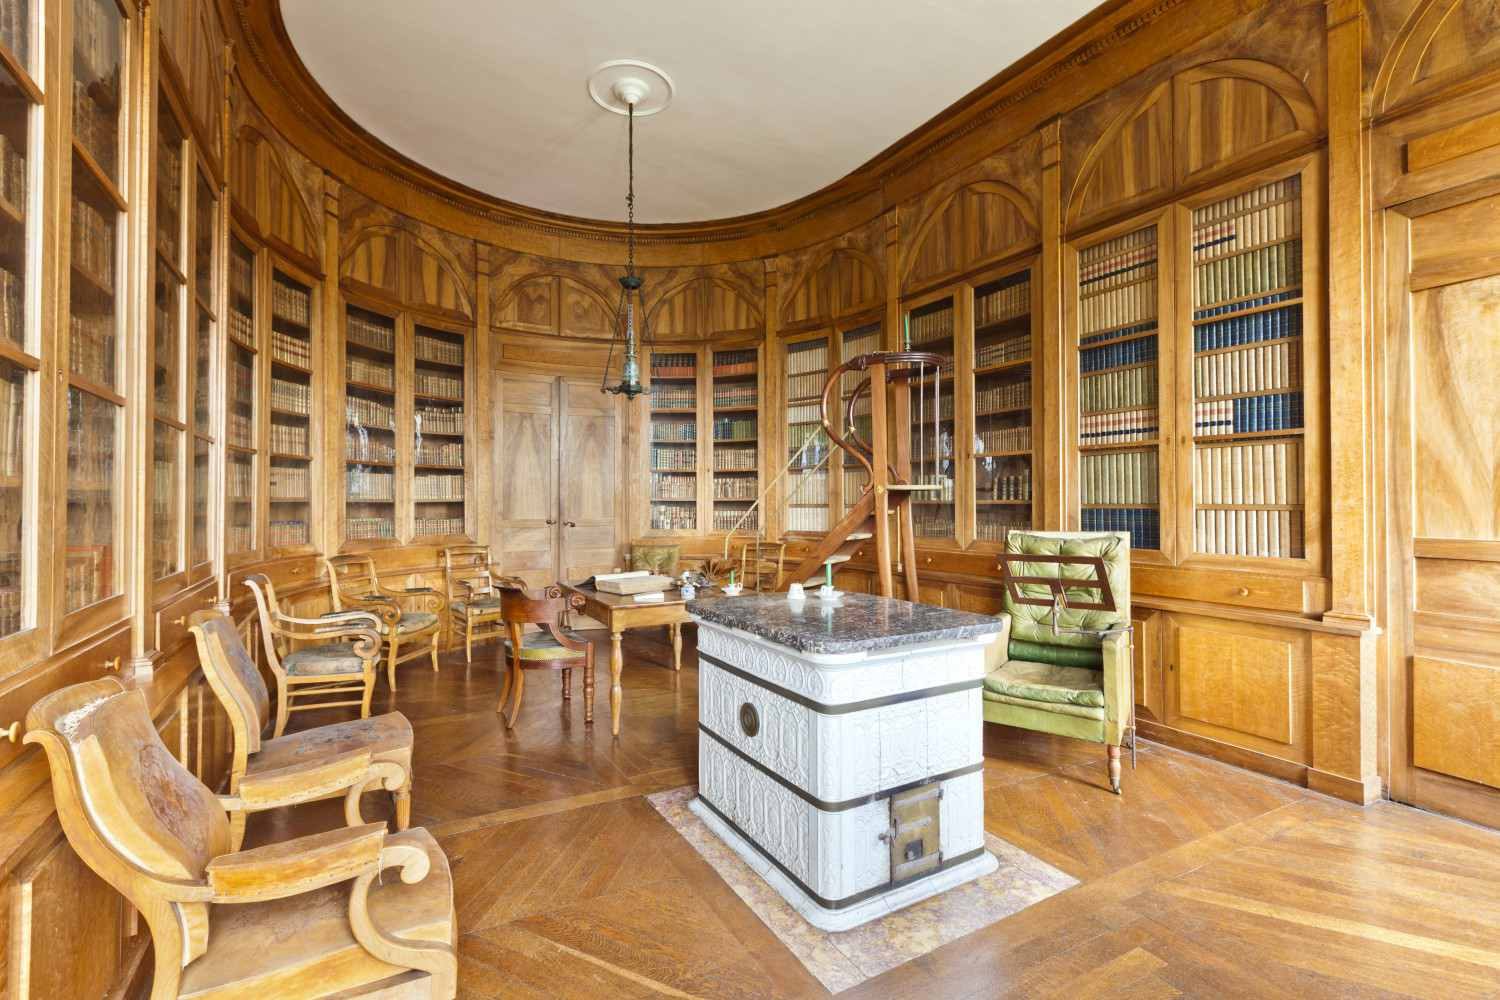 Chateau d'Arlay library